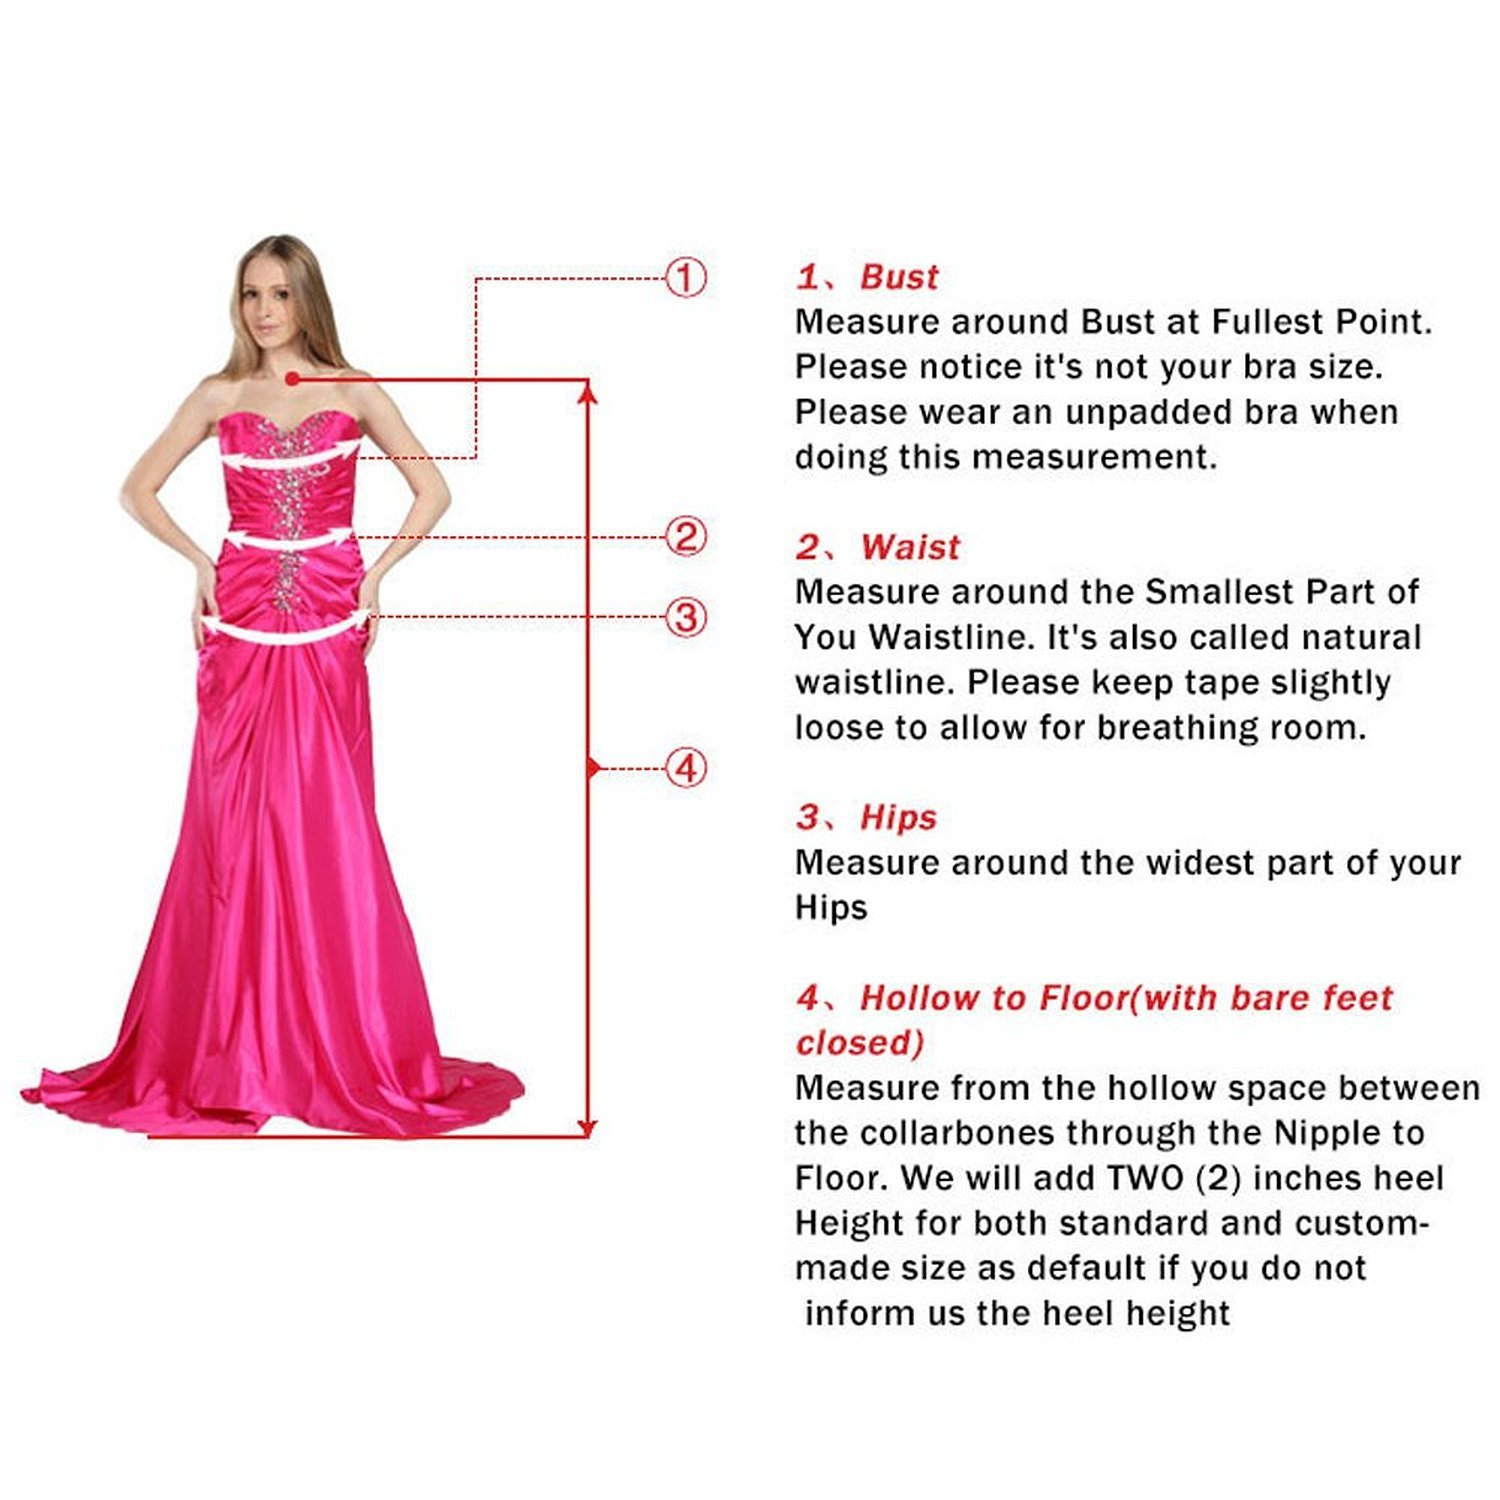 SeasonMall Womens Prom Dresses 2016 Lace V-Neck A Line Sleeveless Sweep Train With Beading Dress Size 0 Dark Royal Blue by SeasonMall (Image #6)